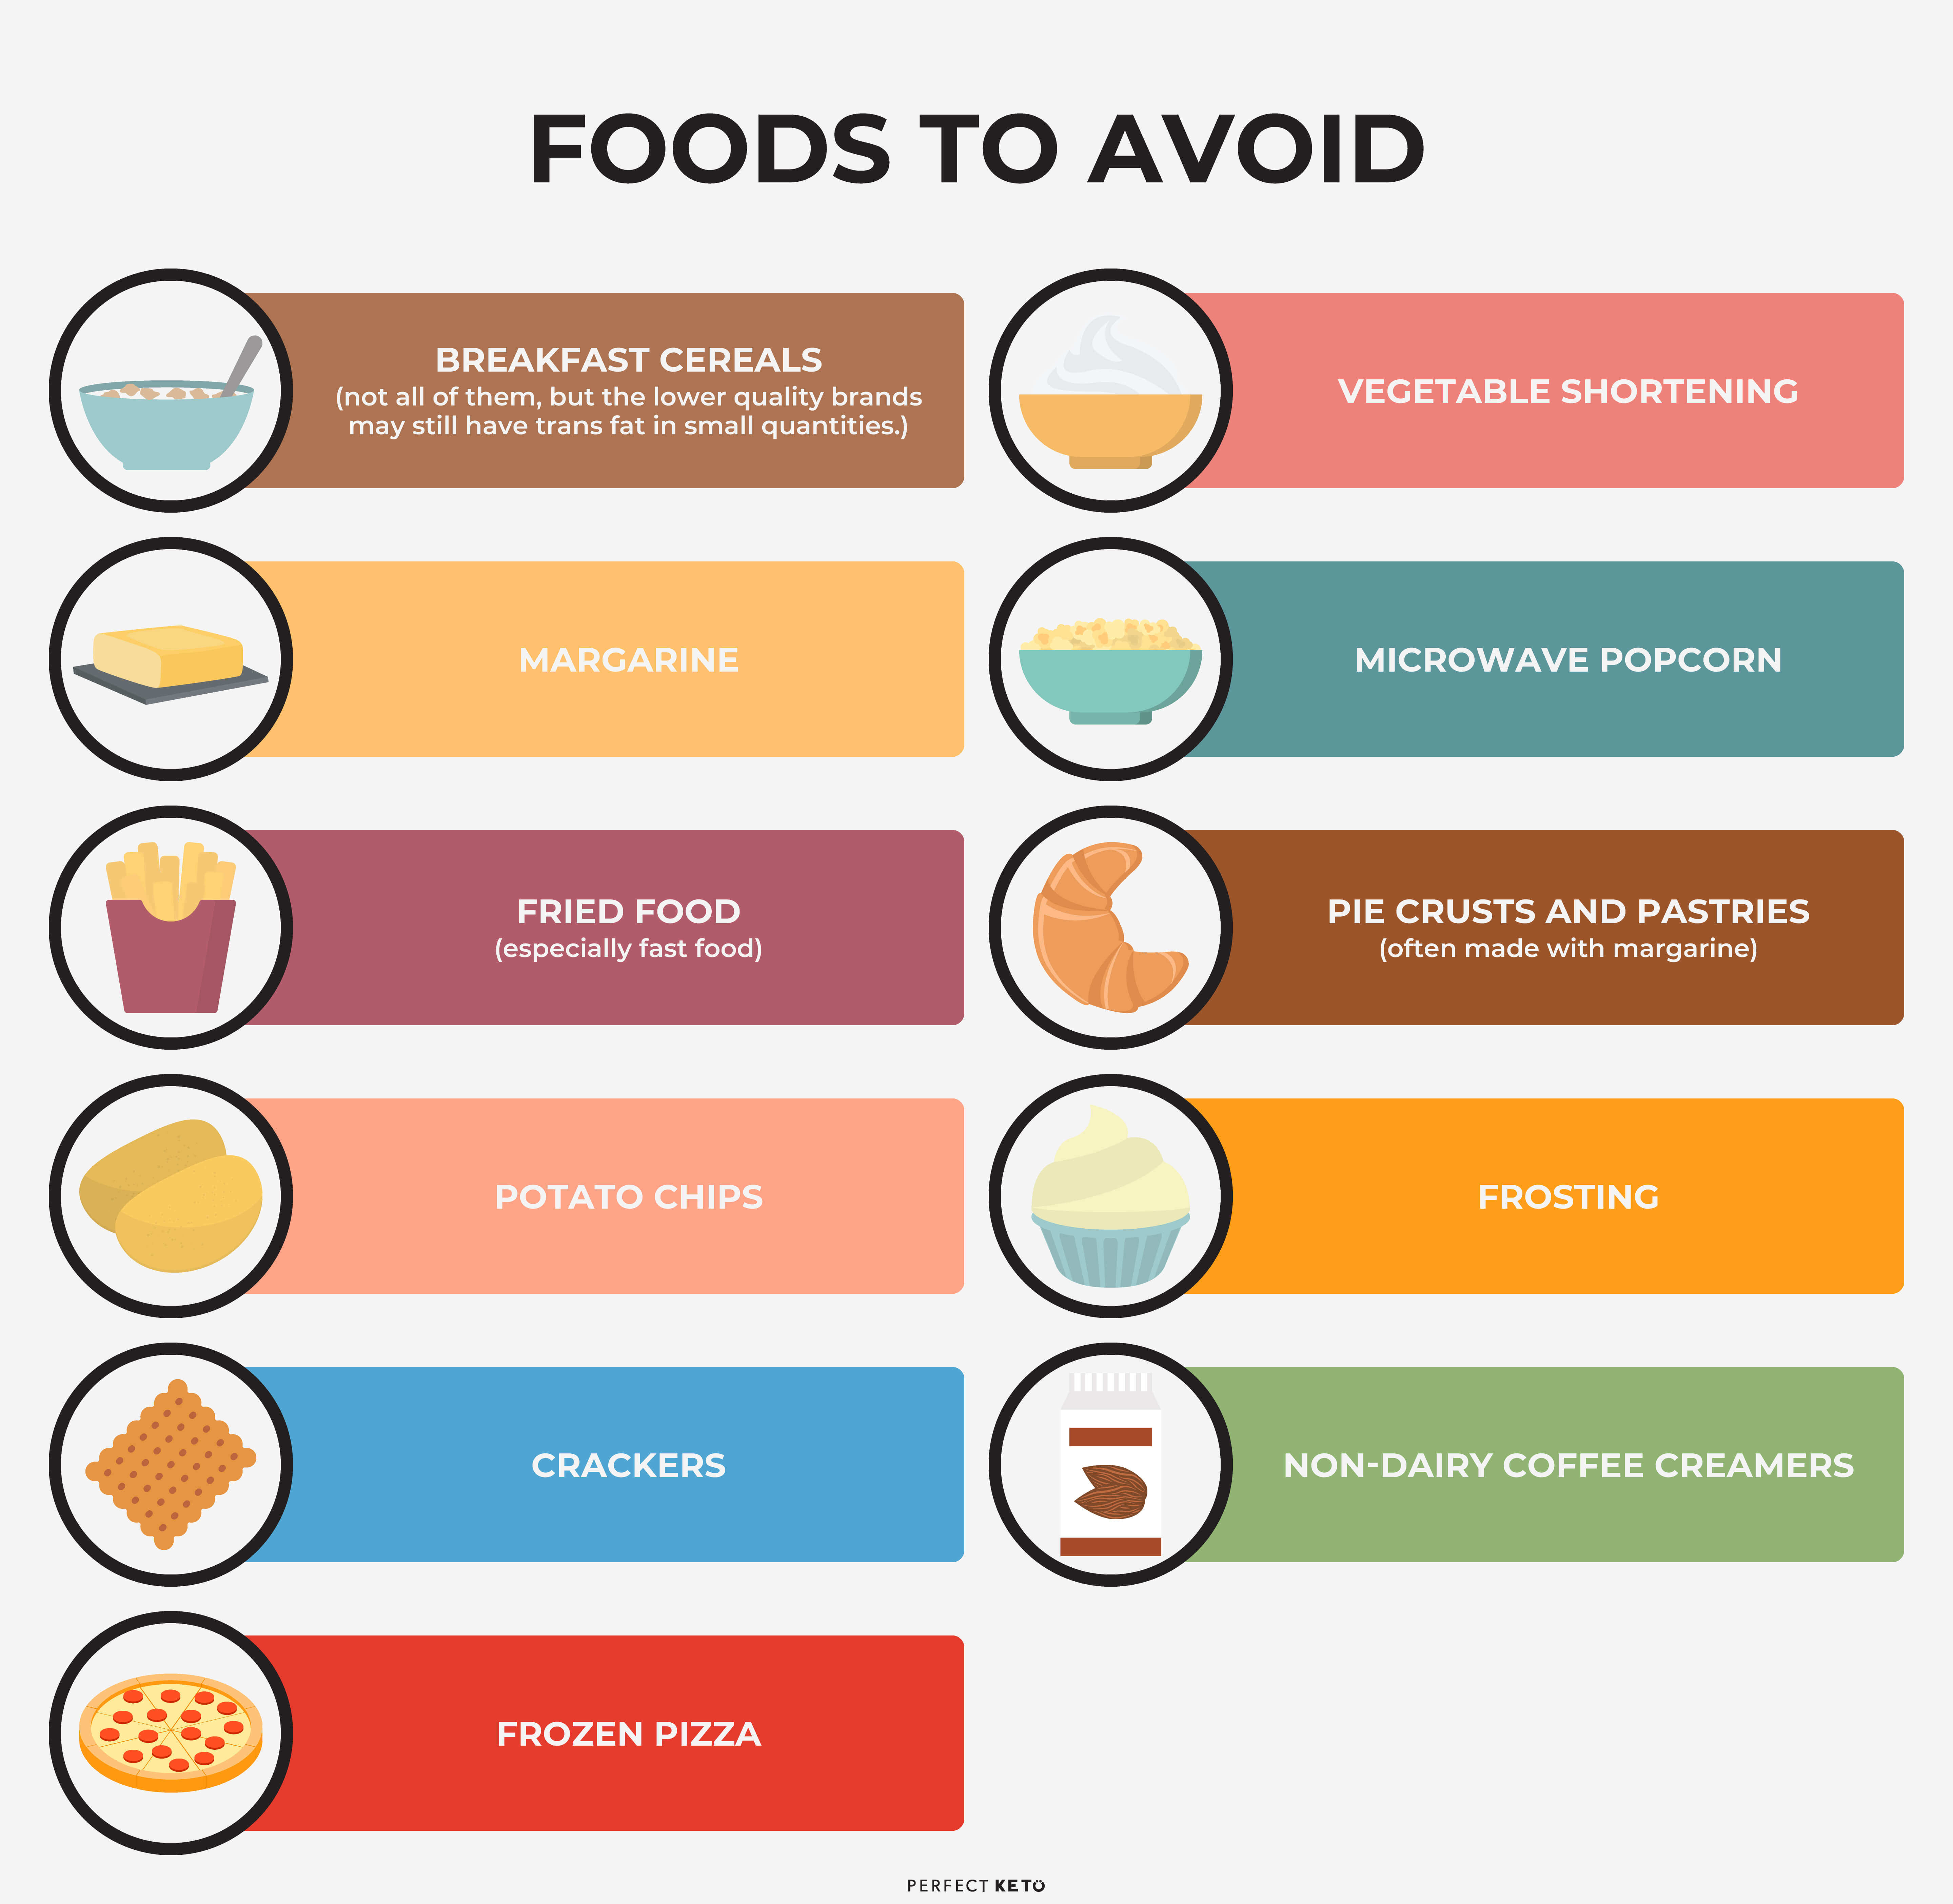 Foods With Hydrogenated Oils to Avoid